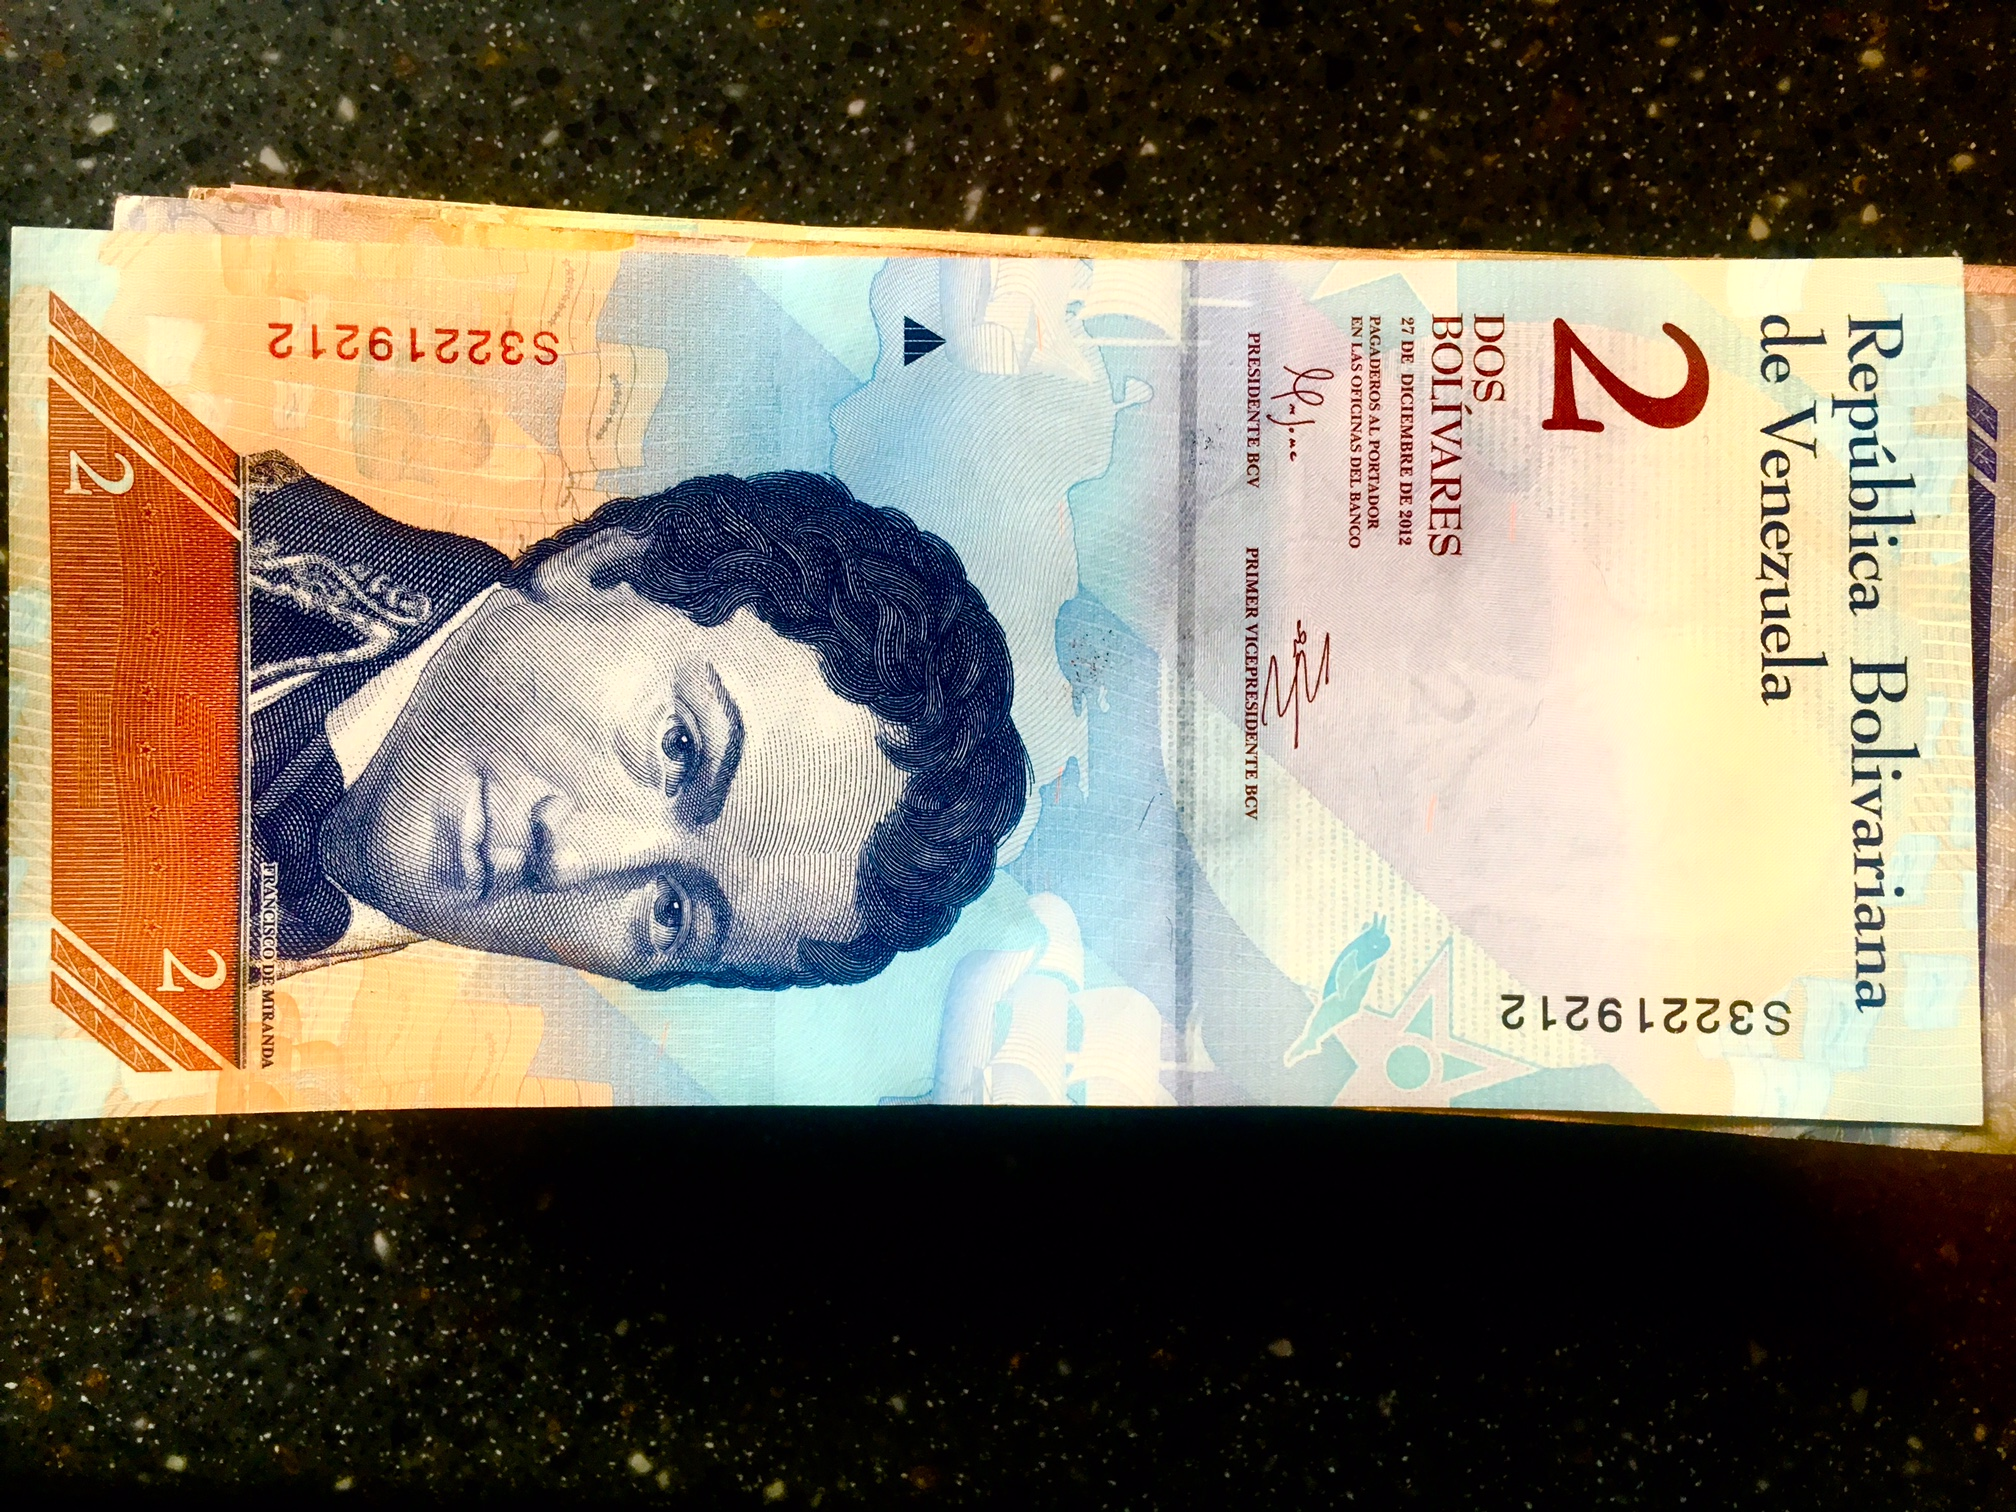 Venezuelan two-dollar bill